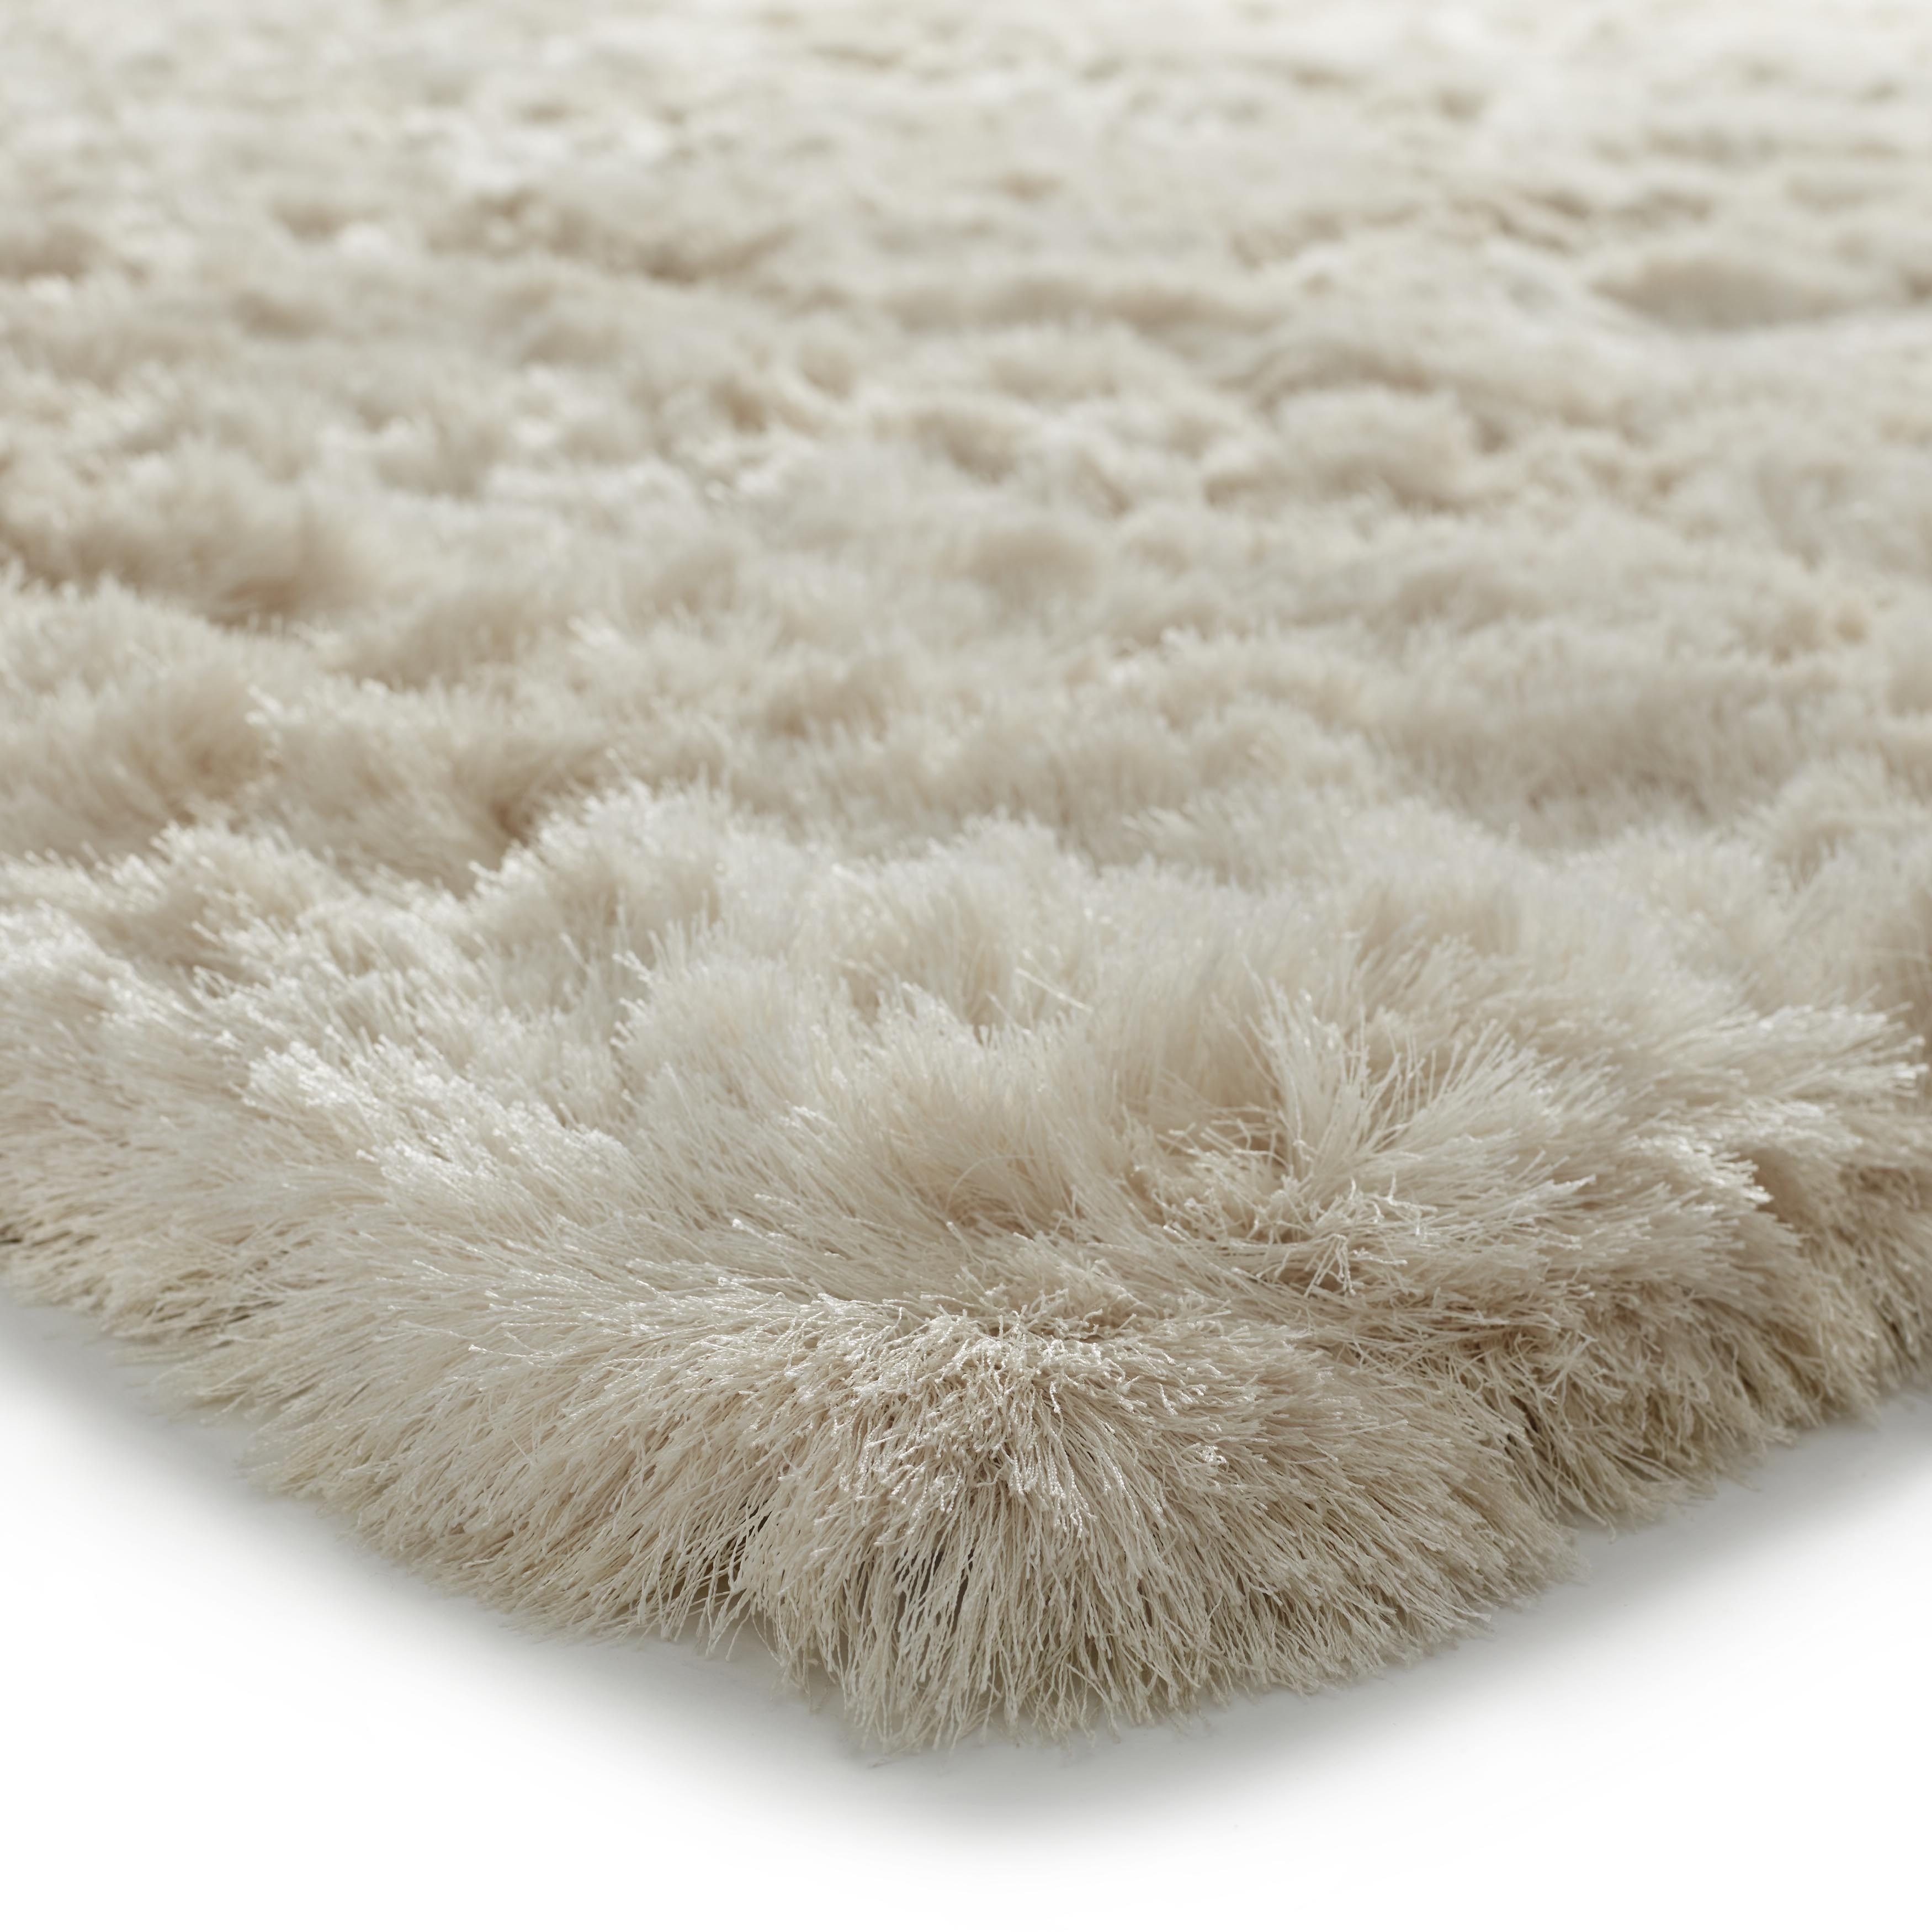 garden nuloom posh ivory overstock product free shipping luxuries today home shag rug